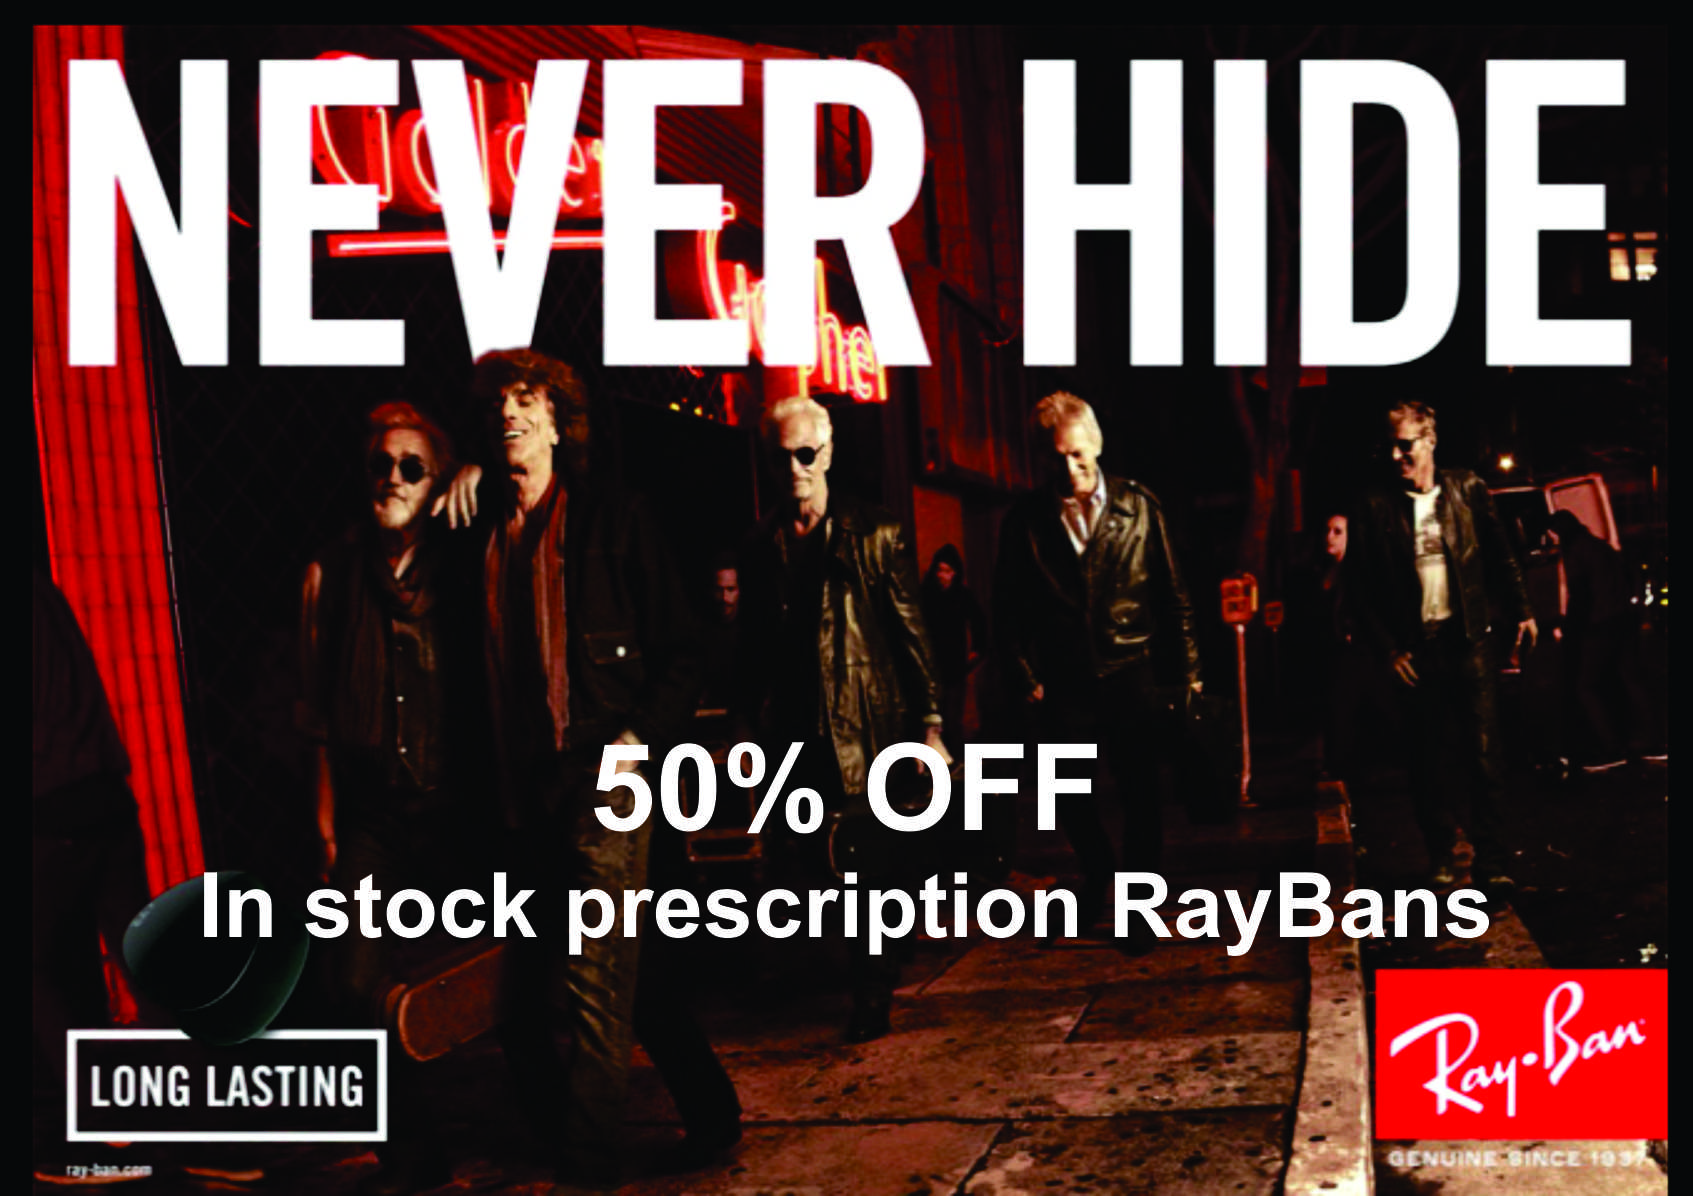 Prescription RayBans 50% OFF